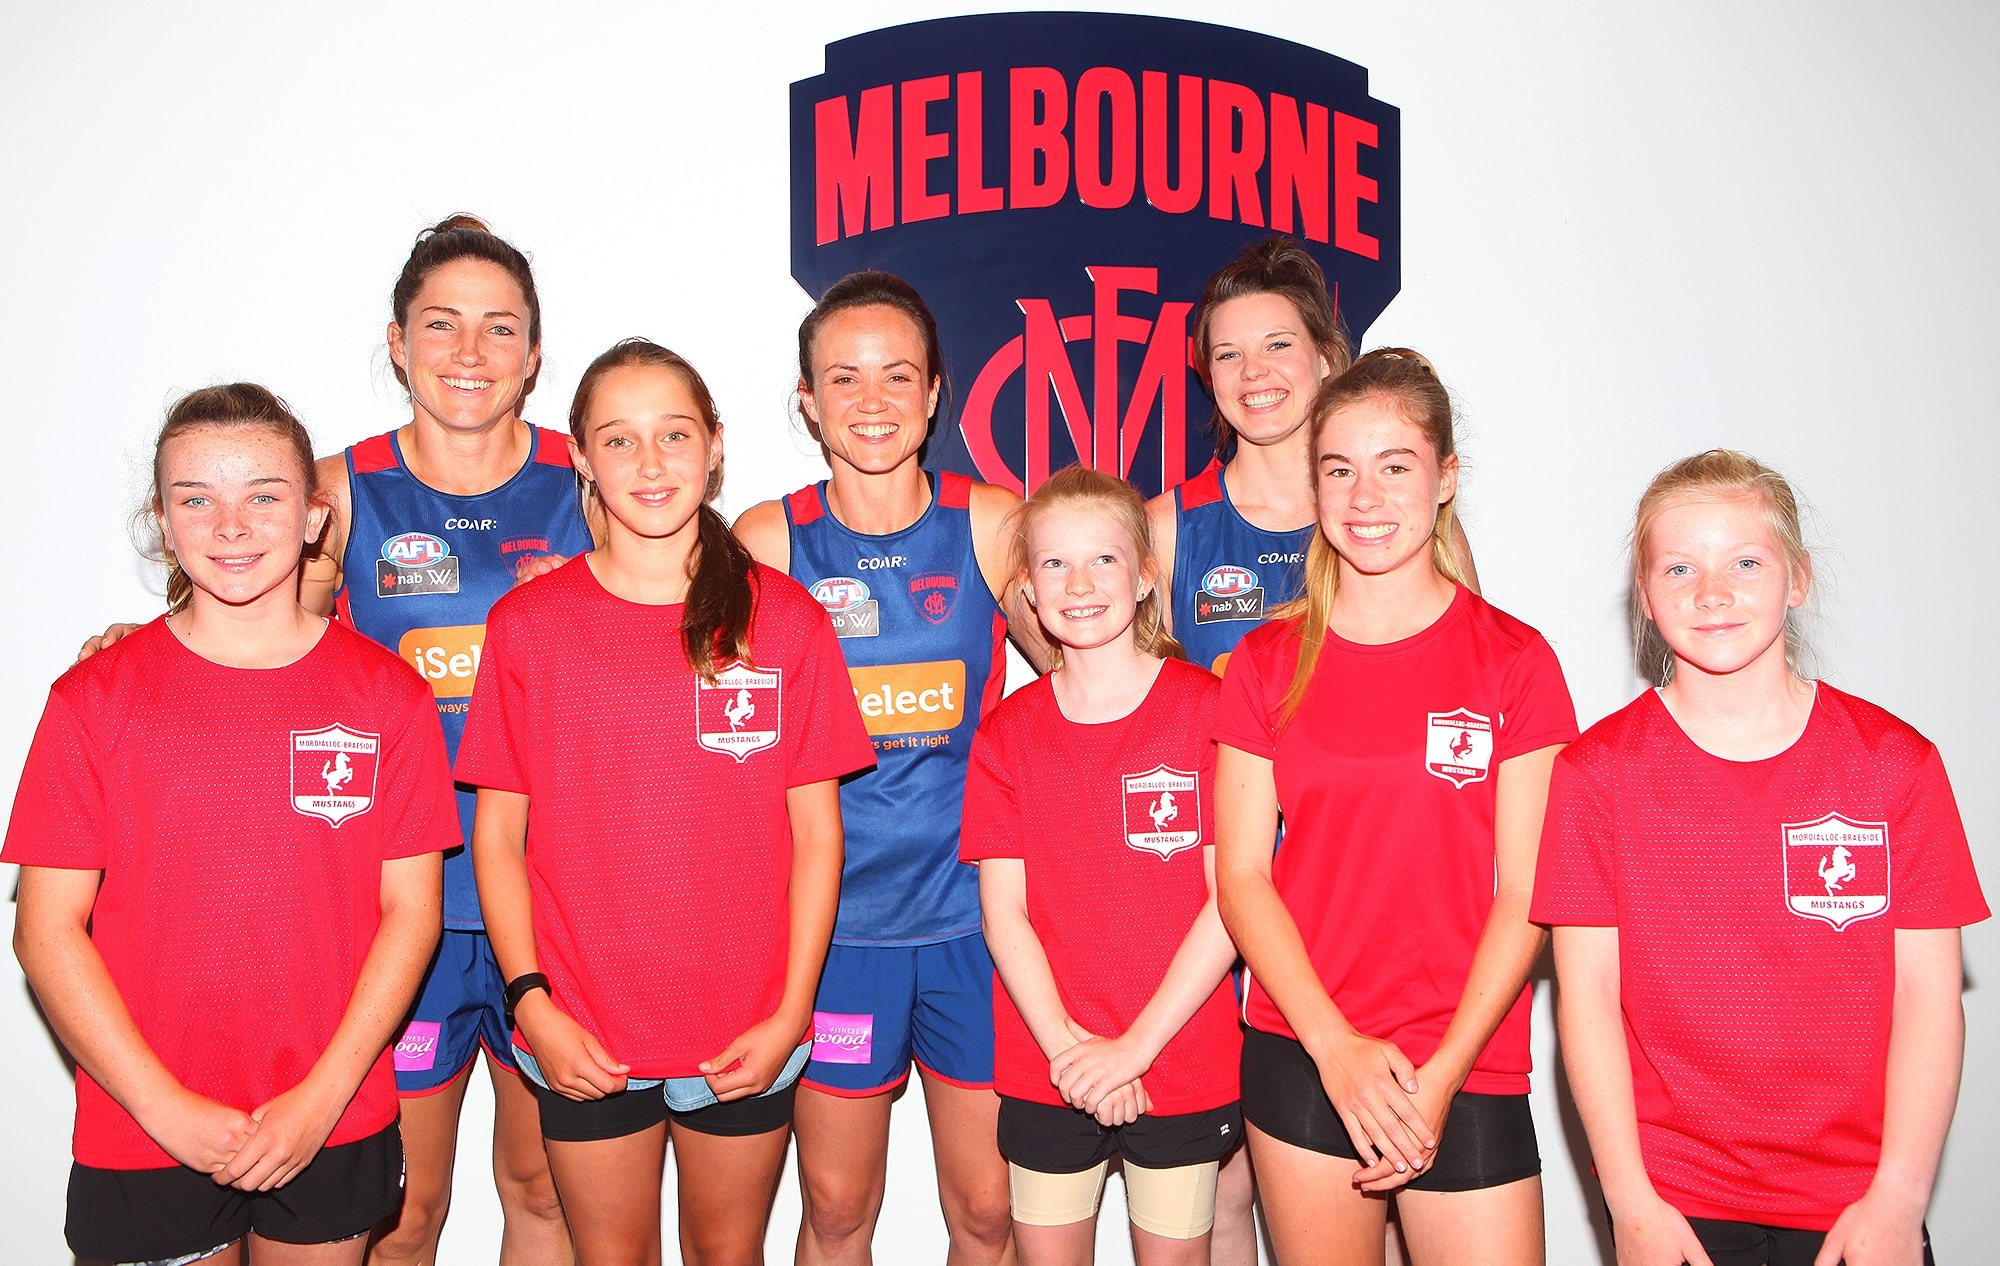 Representatives from the SMJFL meet Melbourne's AFLW leadership group (Photo: Matthew Goodrope)